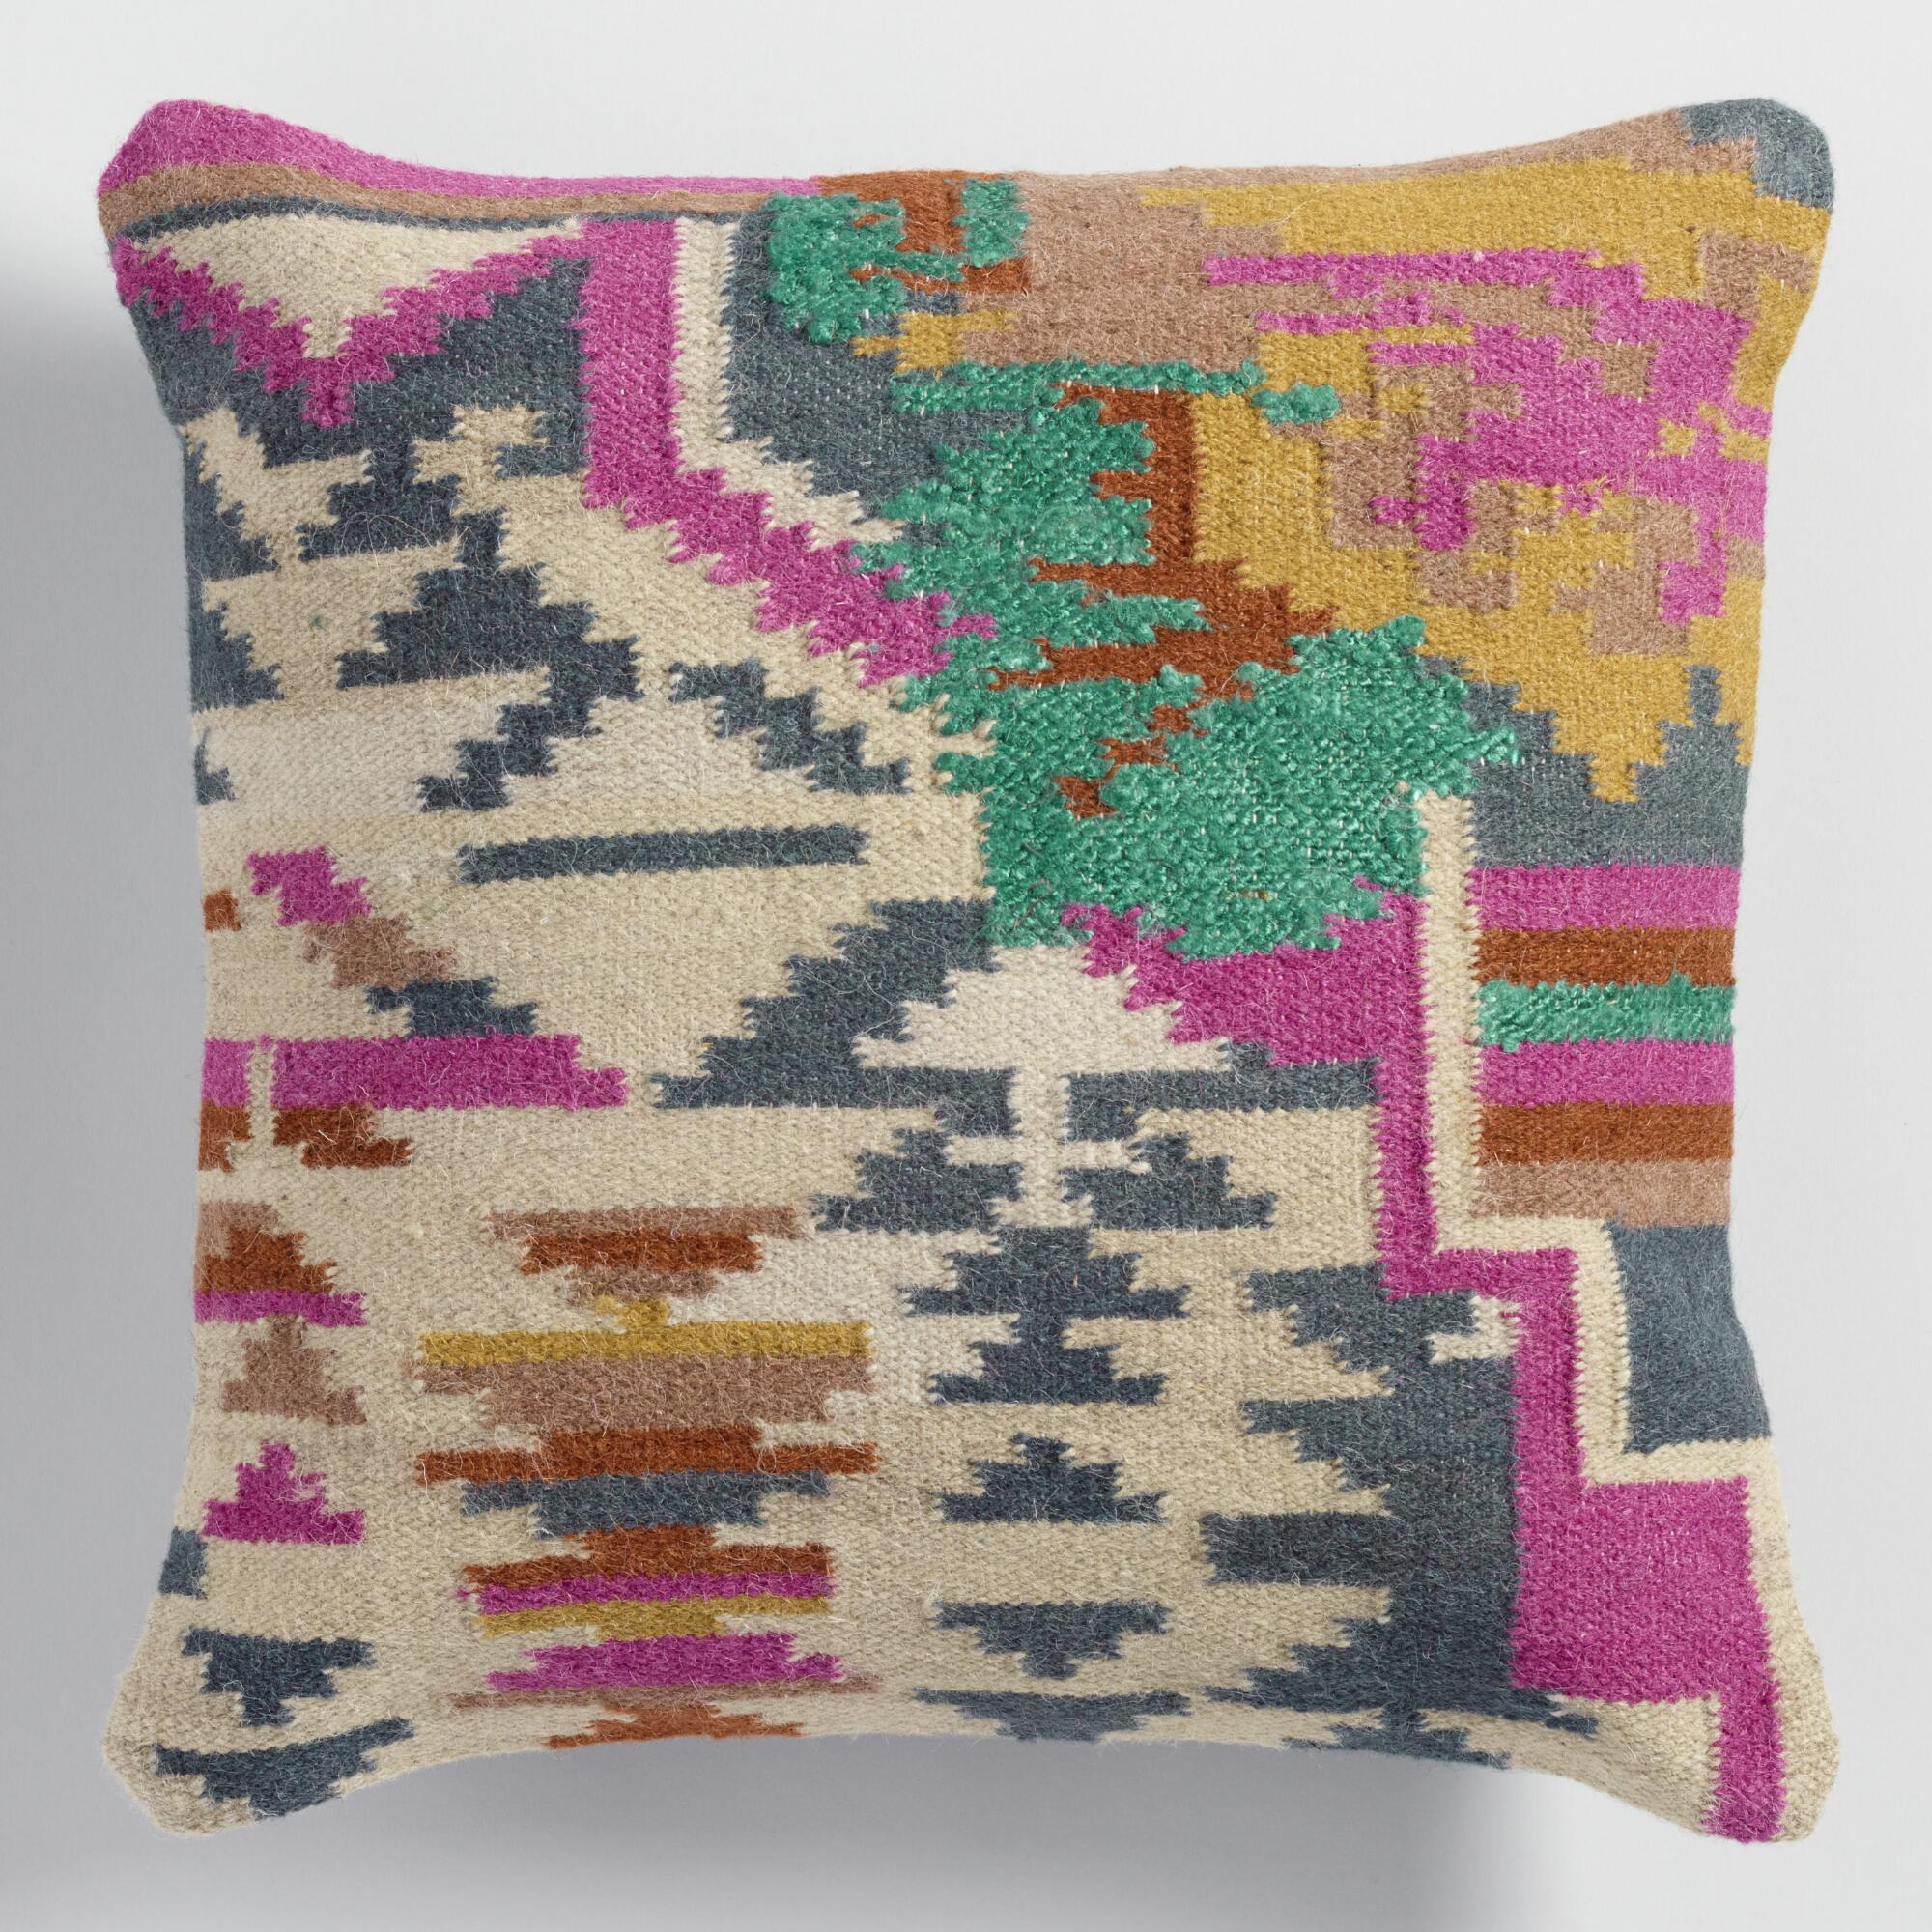 Vibrant colors in pillows add to springtime decor